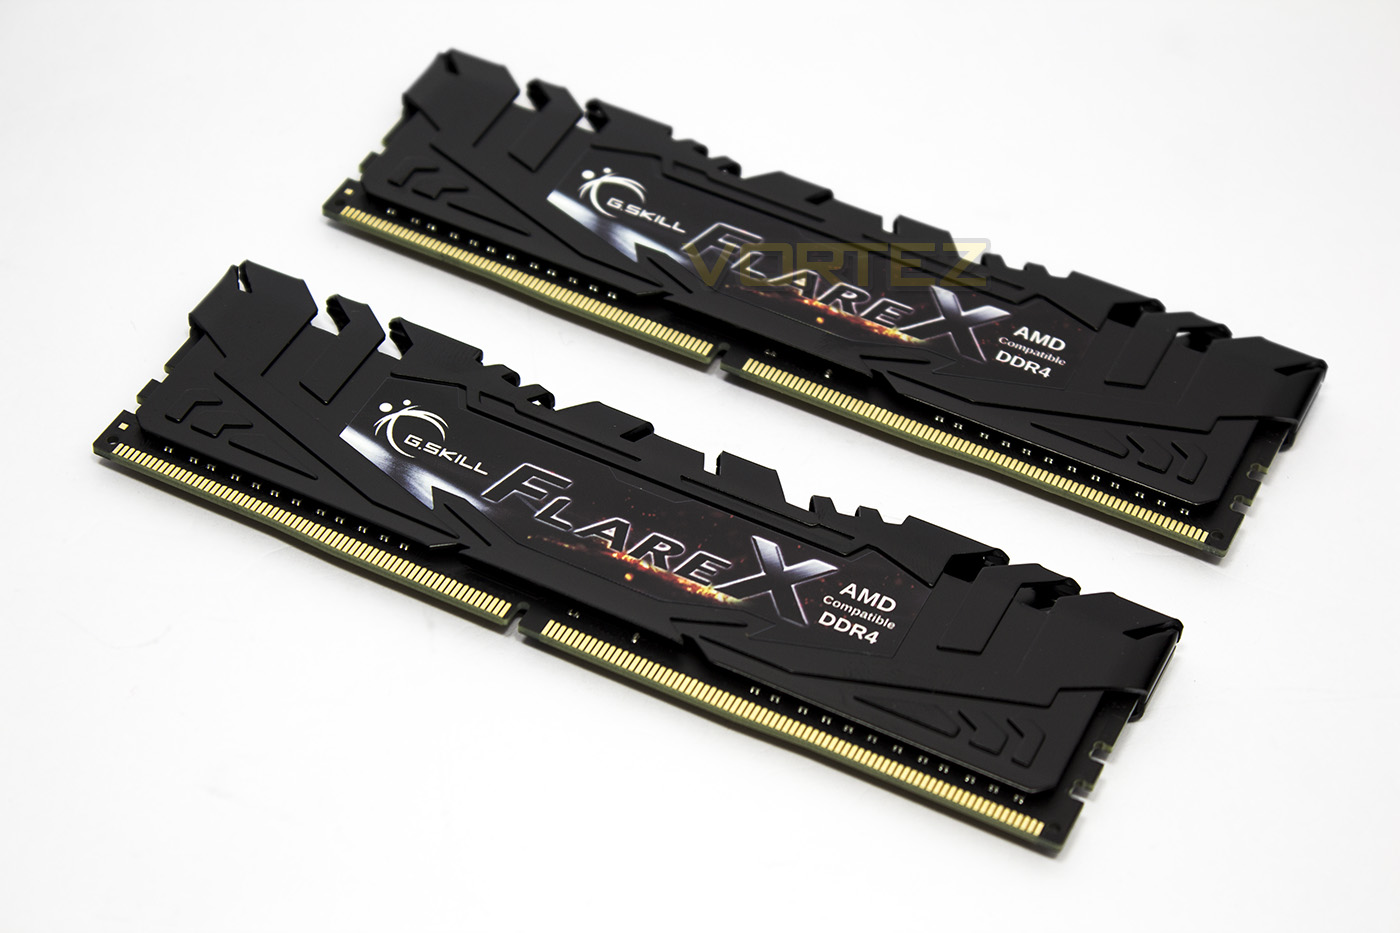 G SKILL Flare X DDR4 Review - Packaging & Product